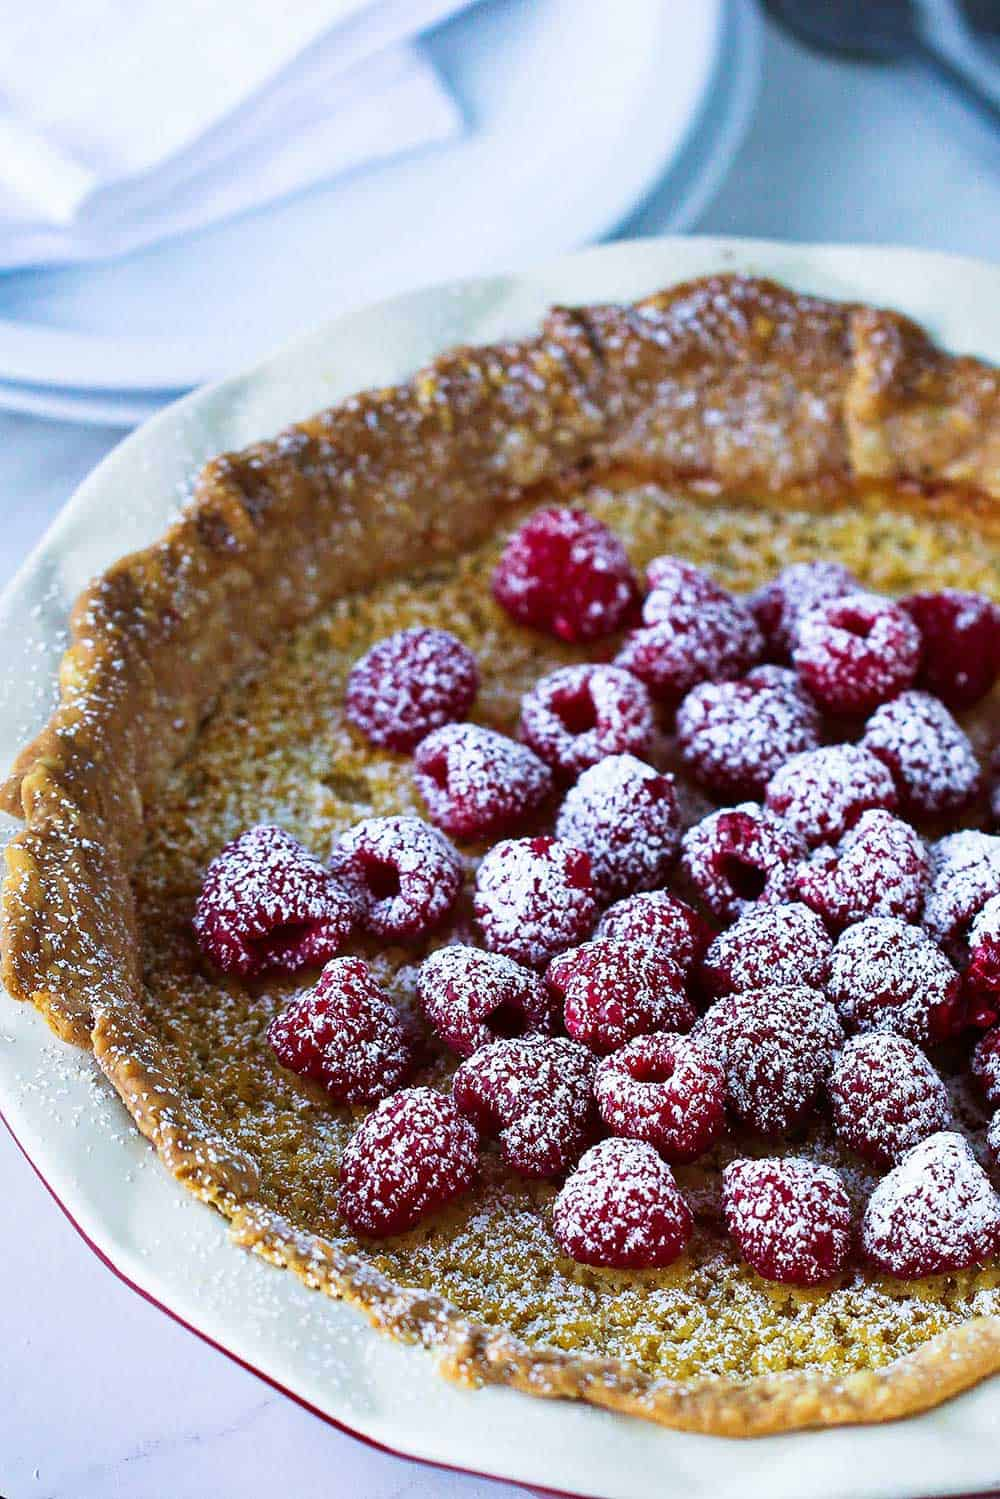 A whole chess pie topped with fresh raspberries and sprinkled with powdered sugar.